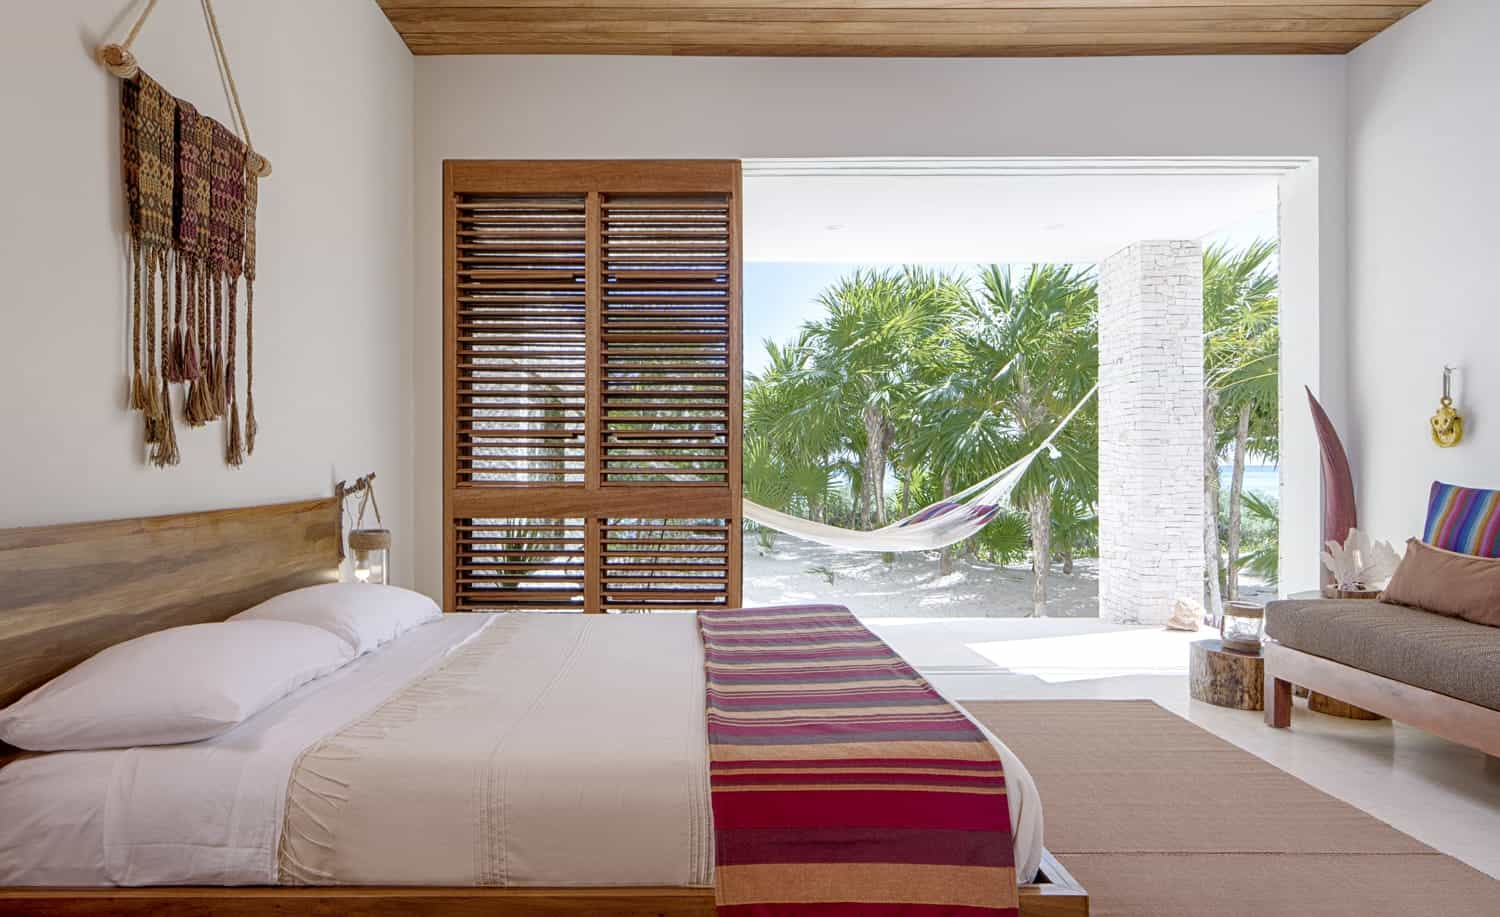 White Bedroom With Wooden Sliding Shutter Doors (Image 27 of 27)